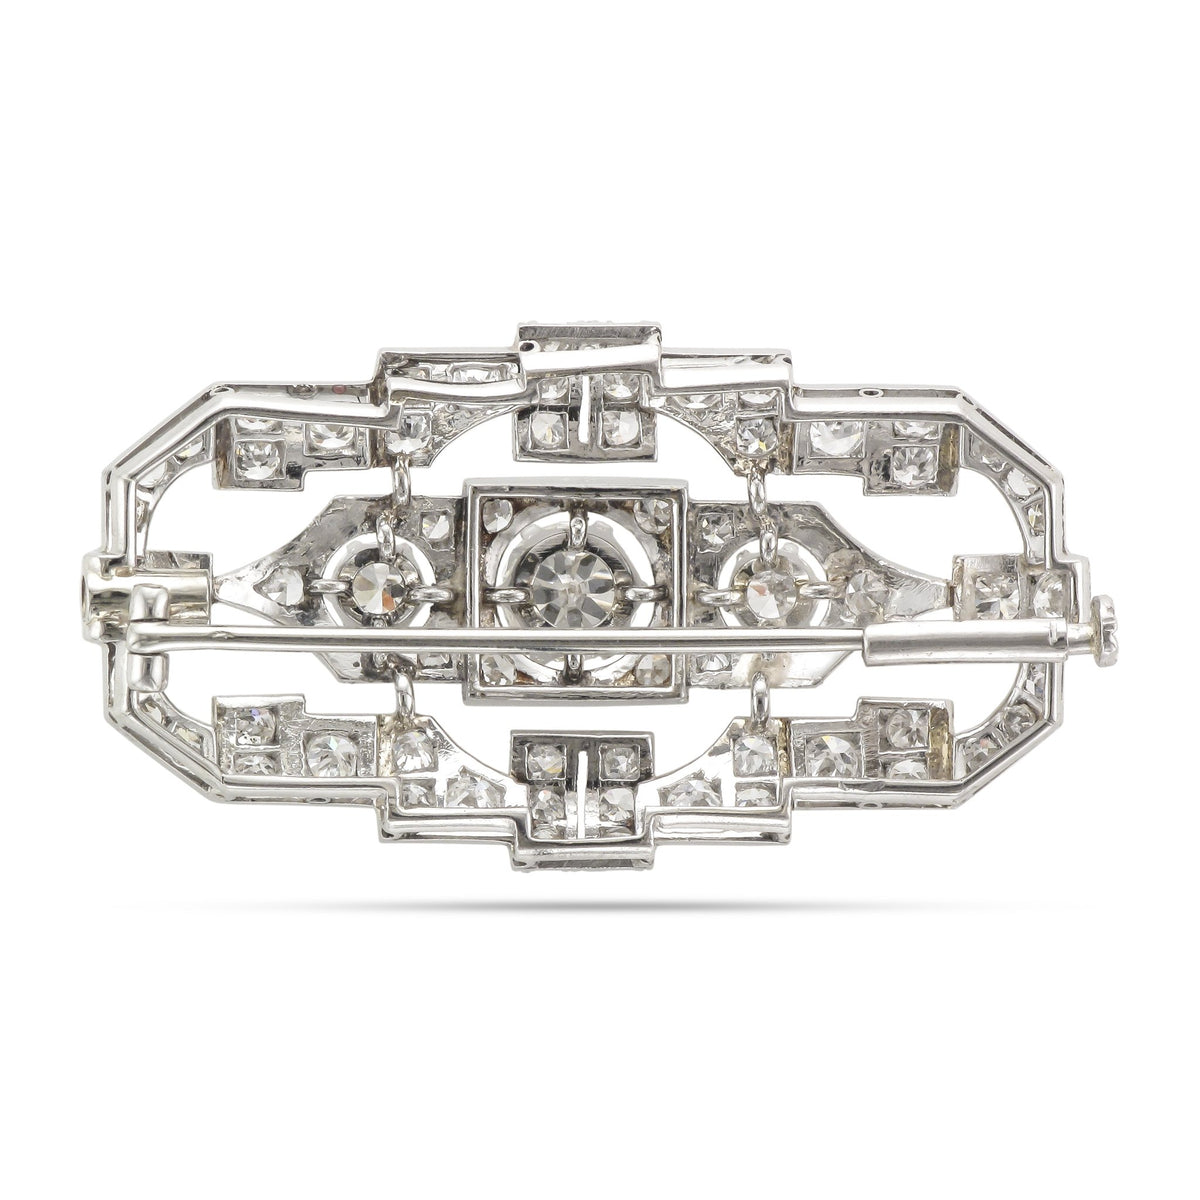 Vintage Platinum Art Deco Diamond Brooch